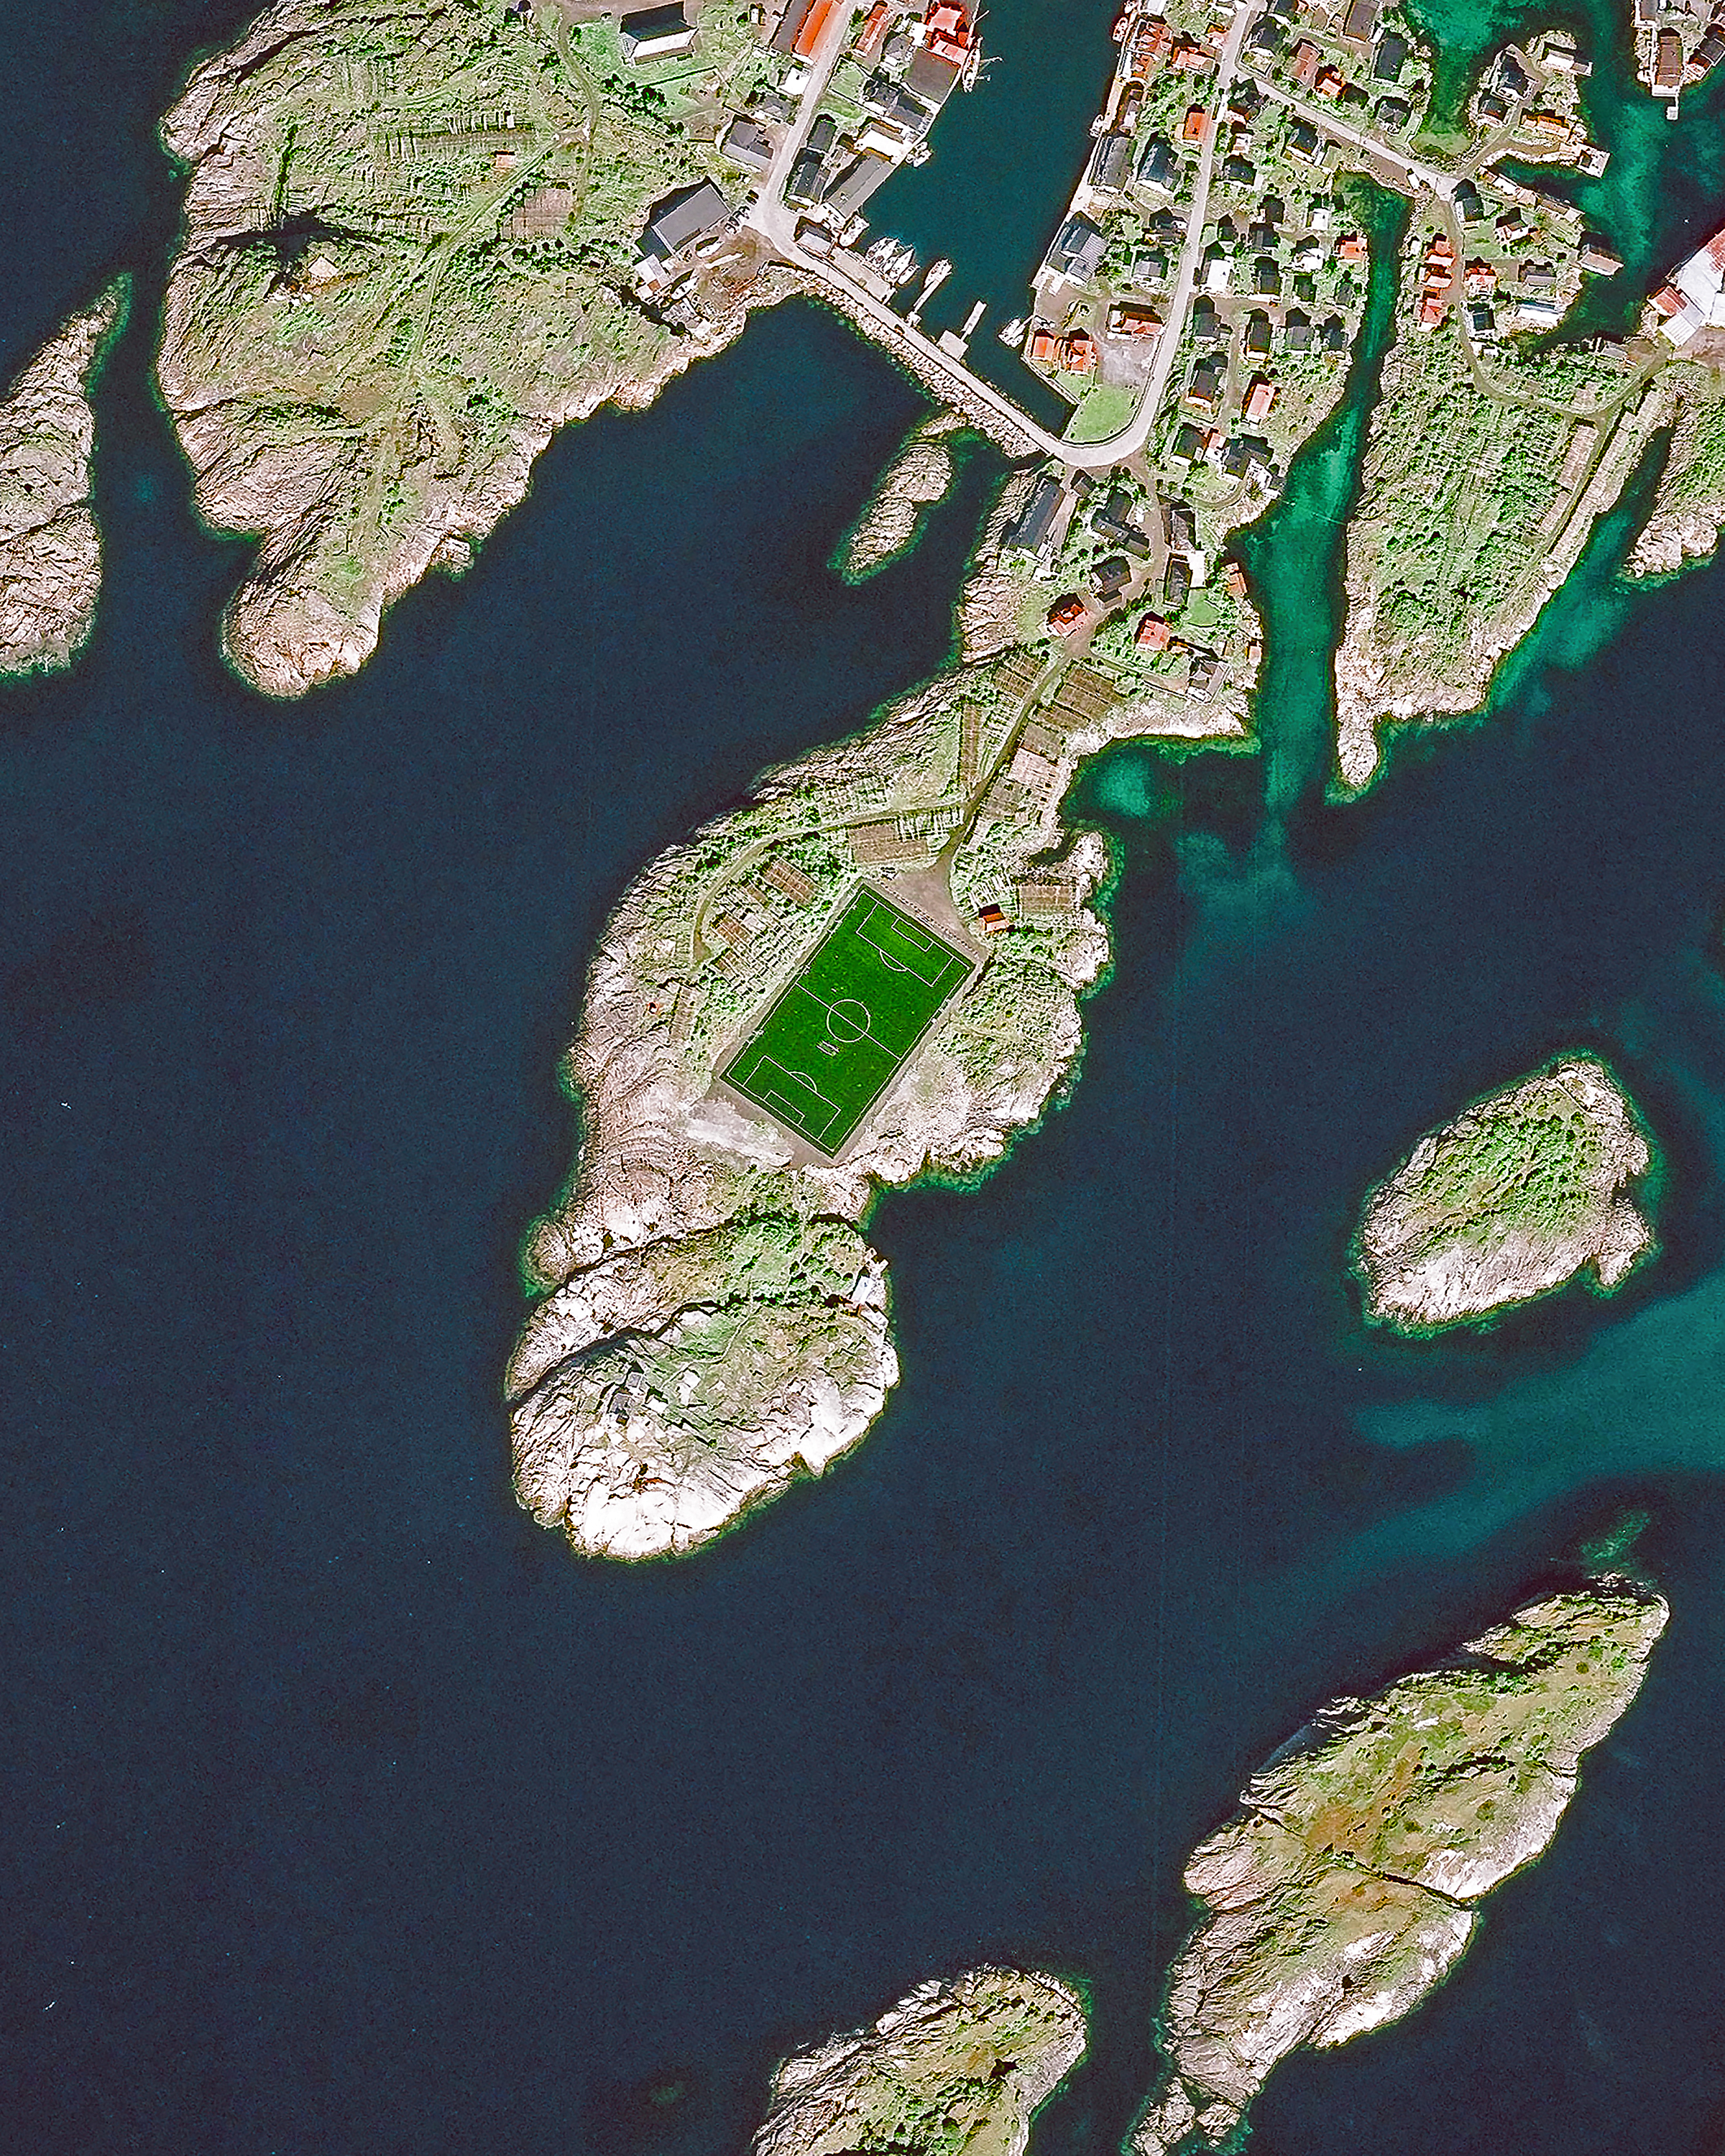 """Check out this unique soccer pitch in Henningsvær, a fishing village located on several small islands in Norway's Lofoten archipelago. Situated inside the Arctic Circle, this 74-acre (0.3 sq. km) village has a population of less than 500 people. Henningsvær is a popular tourist destination, attracting hikers, climbers, divers and snorkelers.  68°08'57.1""""N, 14°12'07.7""""E  Source imagery: DigitalGlobe"""